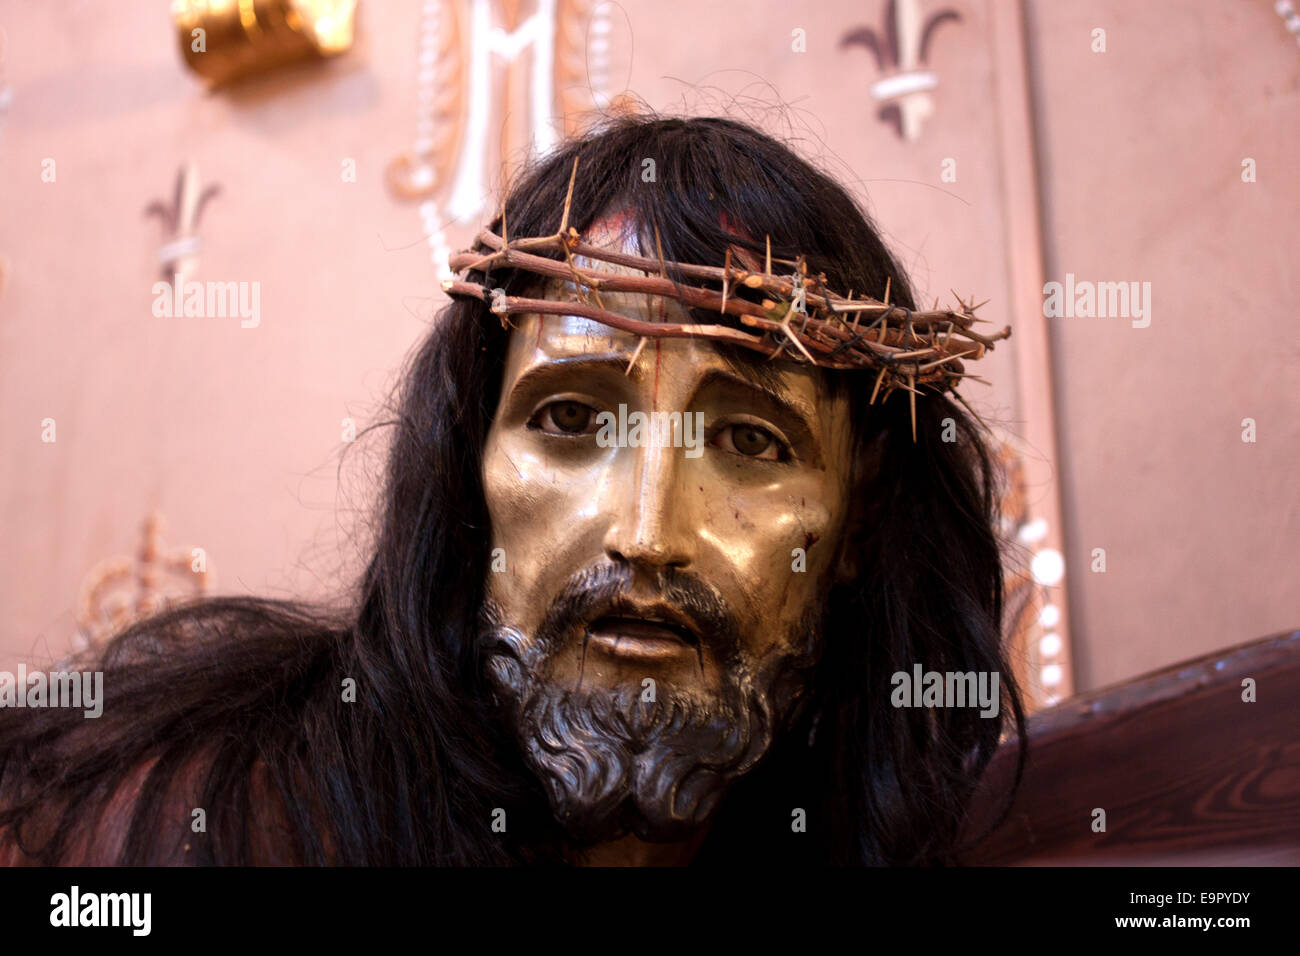 A Wooden Sculpture Of Jesus Christ Wearing The Crown Thorns Decorates Church In Guanajuato